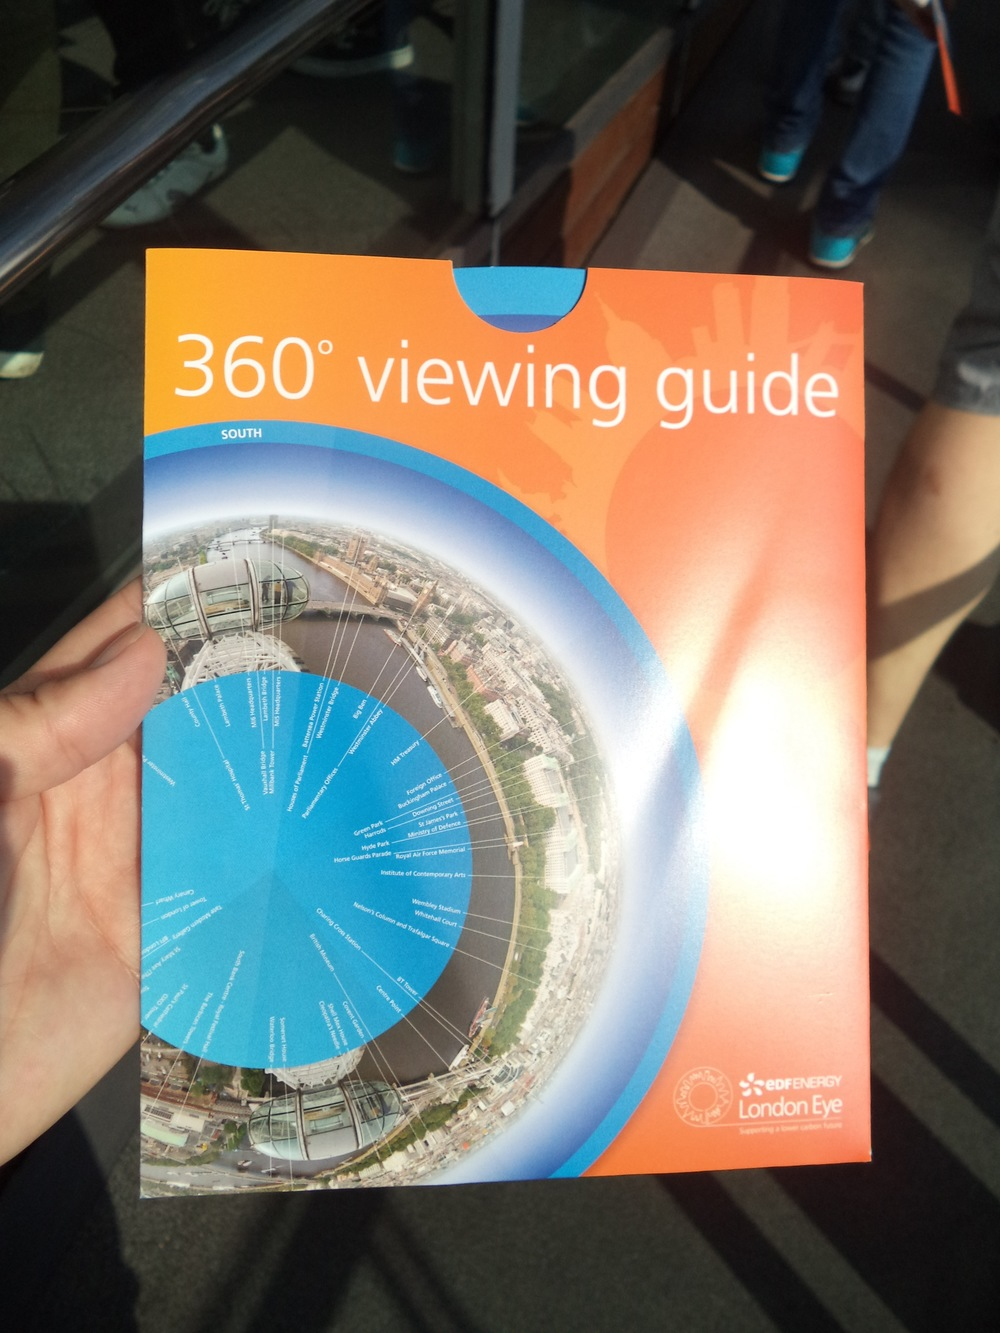 The viewing guide.